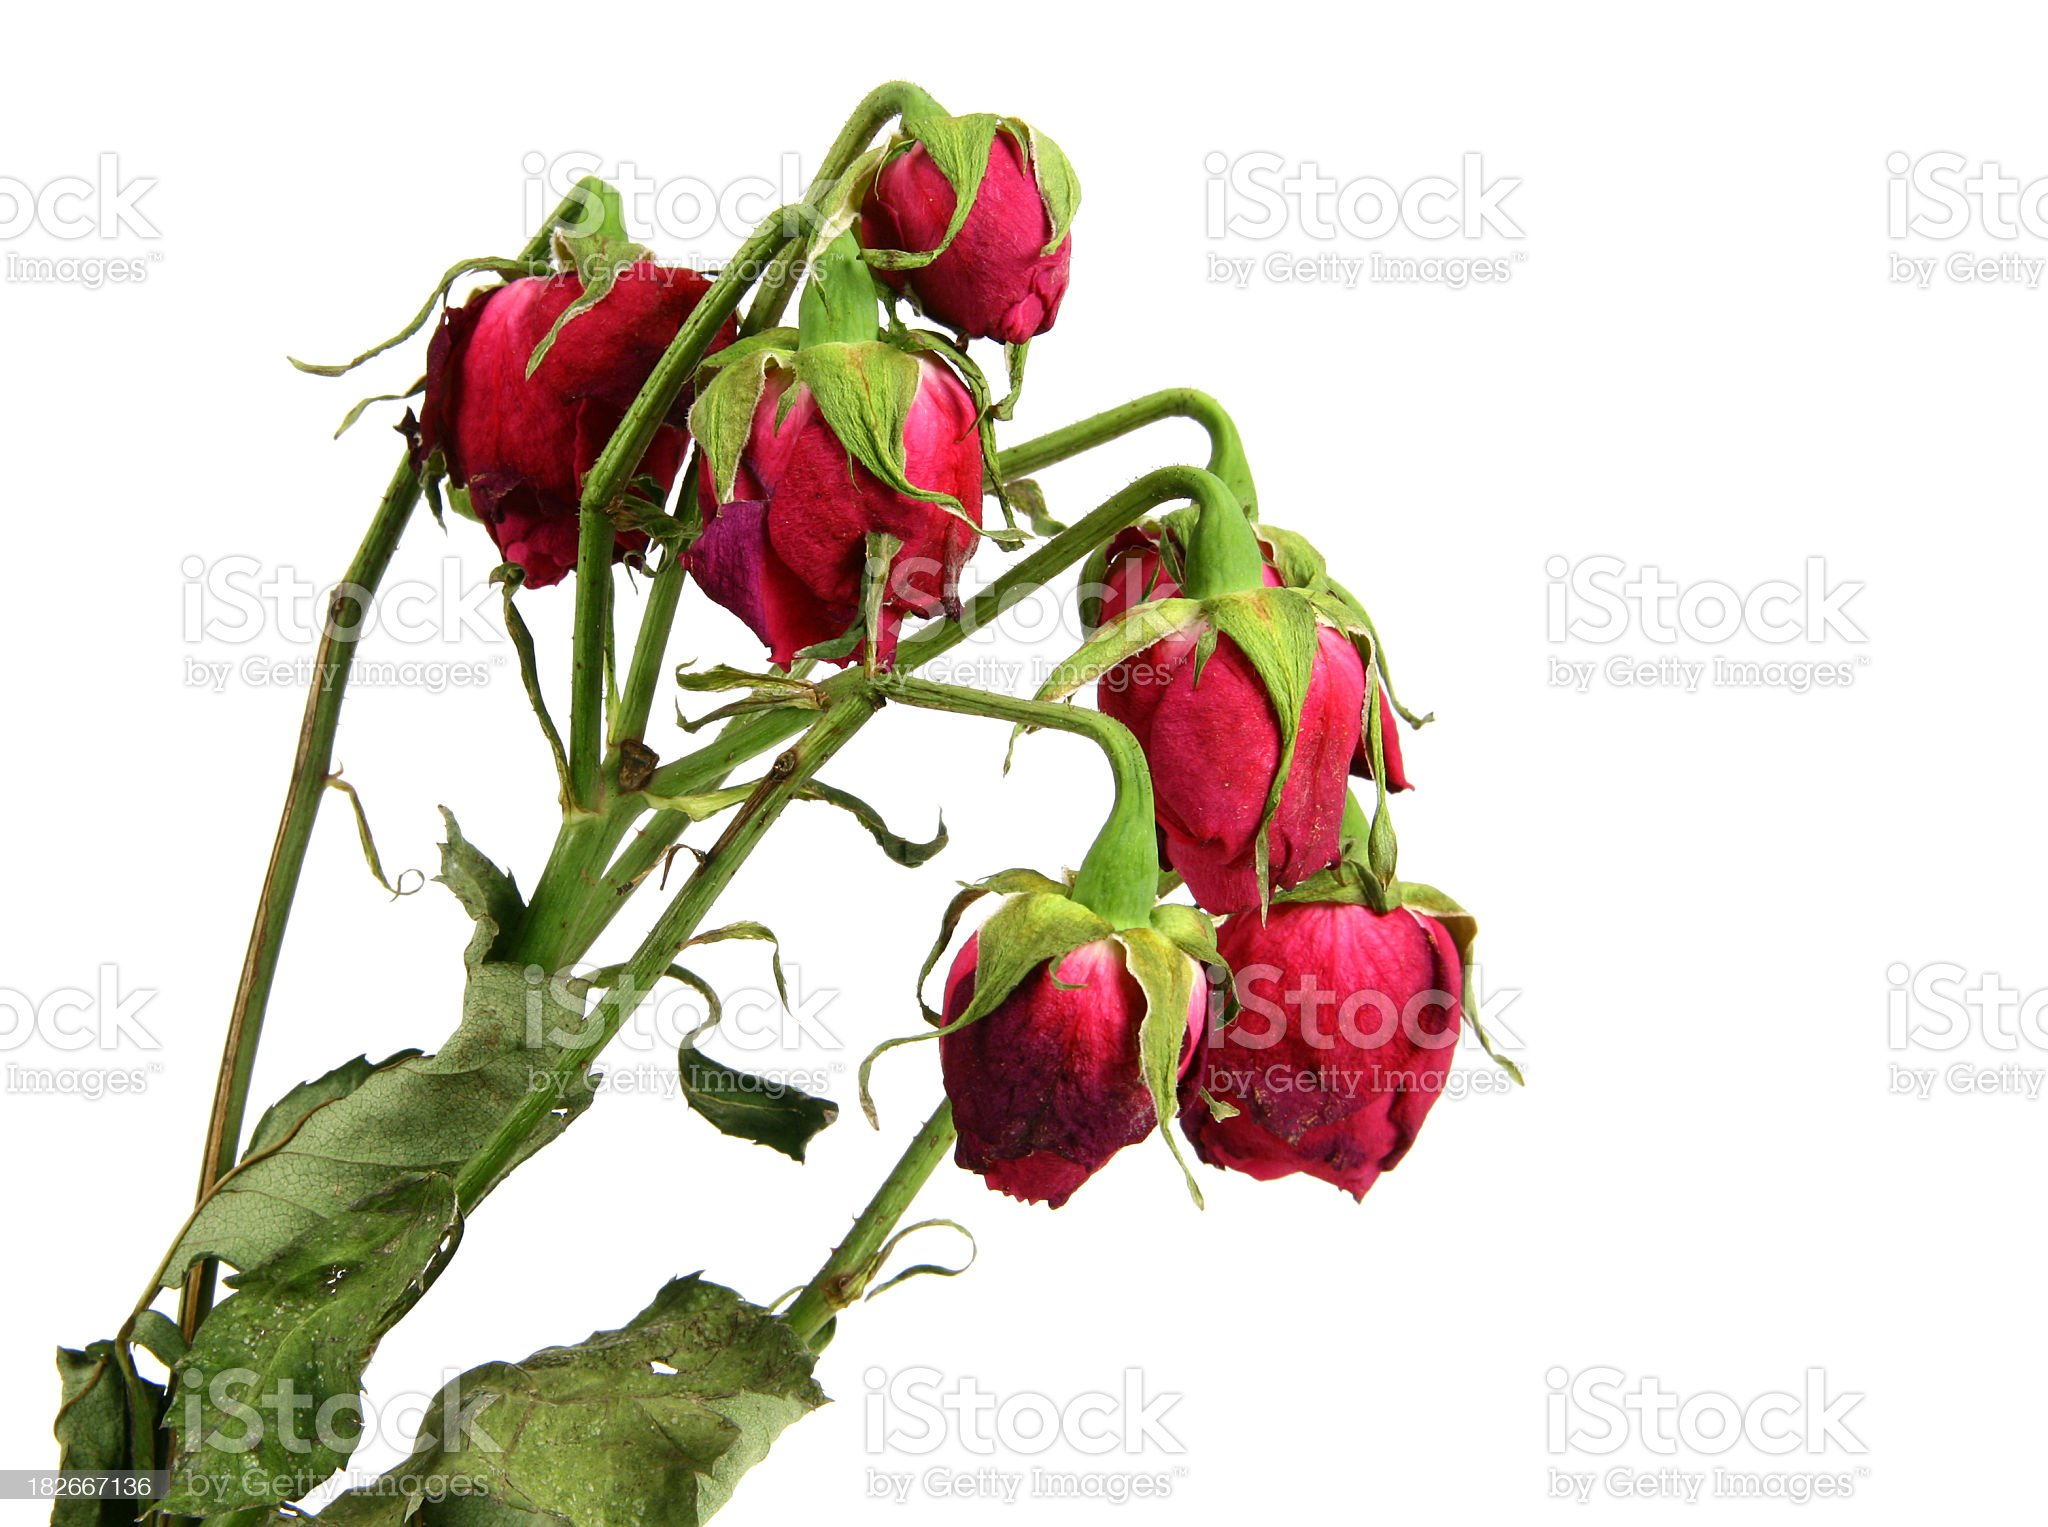 A stem with seven wilting red rose buds on it  royalty-free stock photo